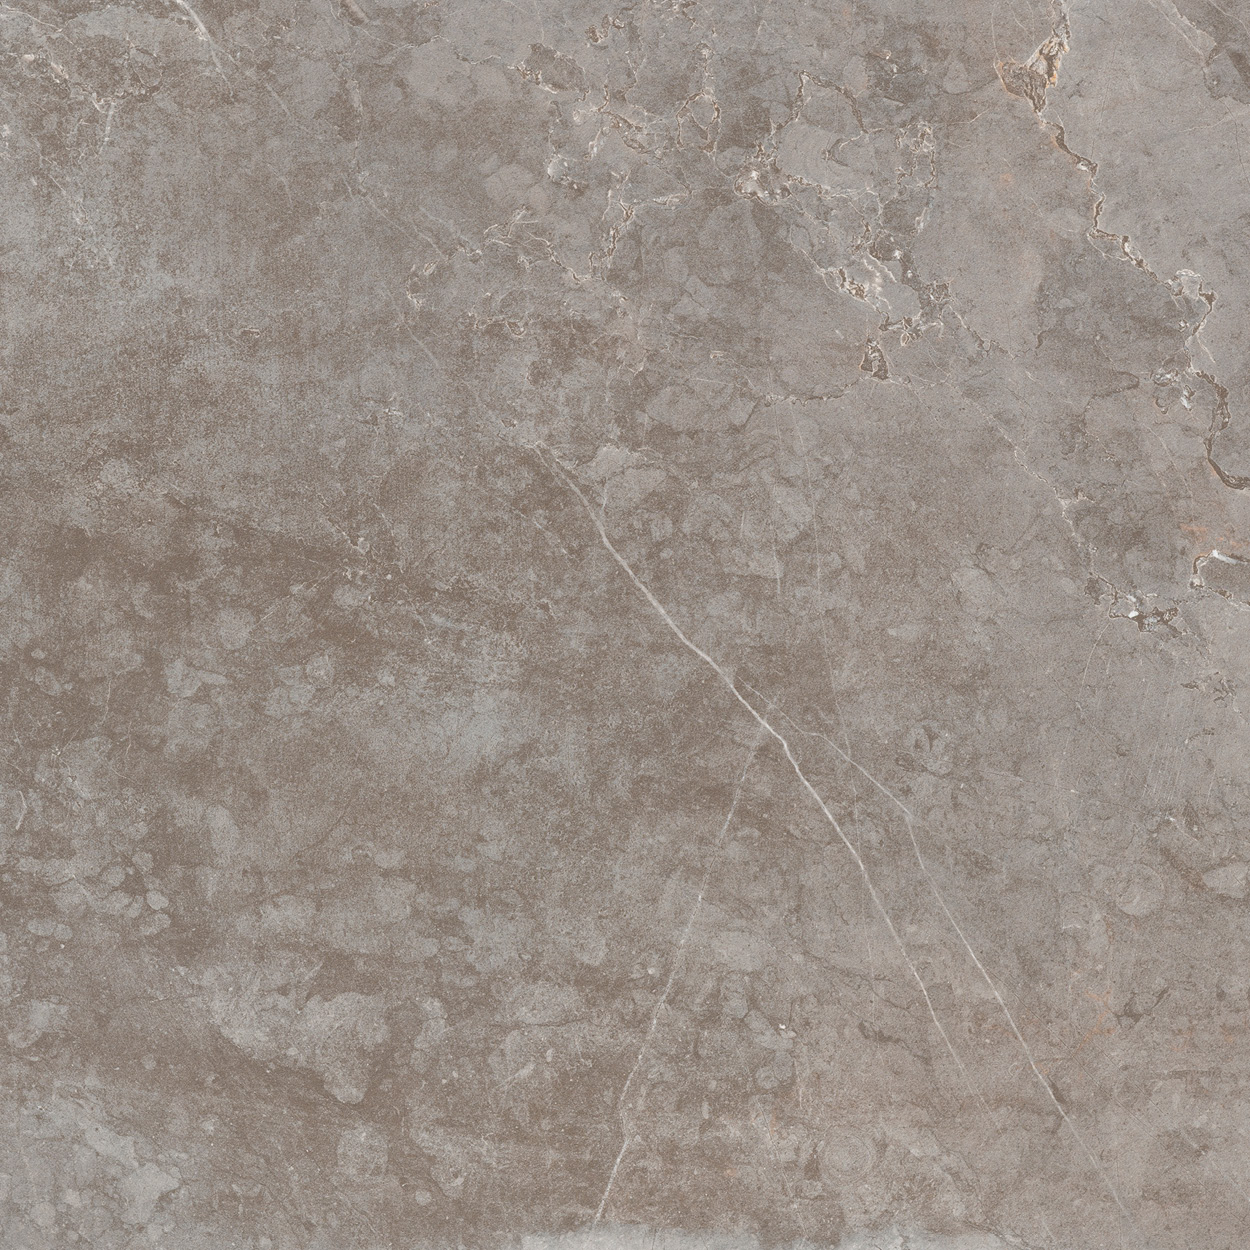 16 X 32 Evo Stone Natural Honed finished Rectified Porcelain Tile (SPECIAL ORDER ONLY)